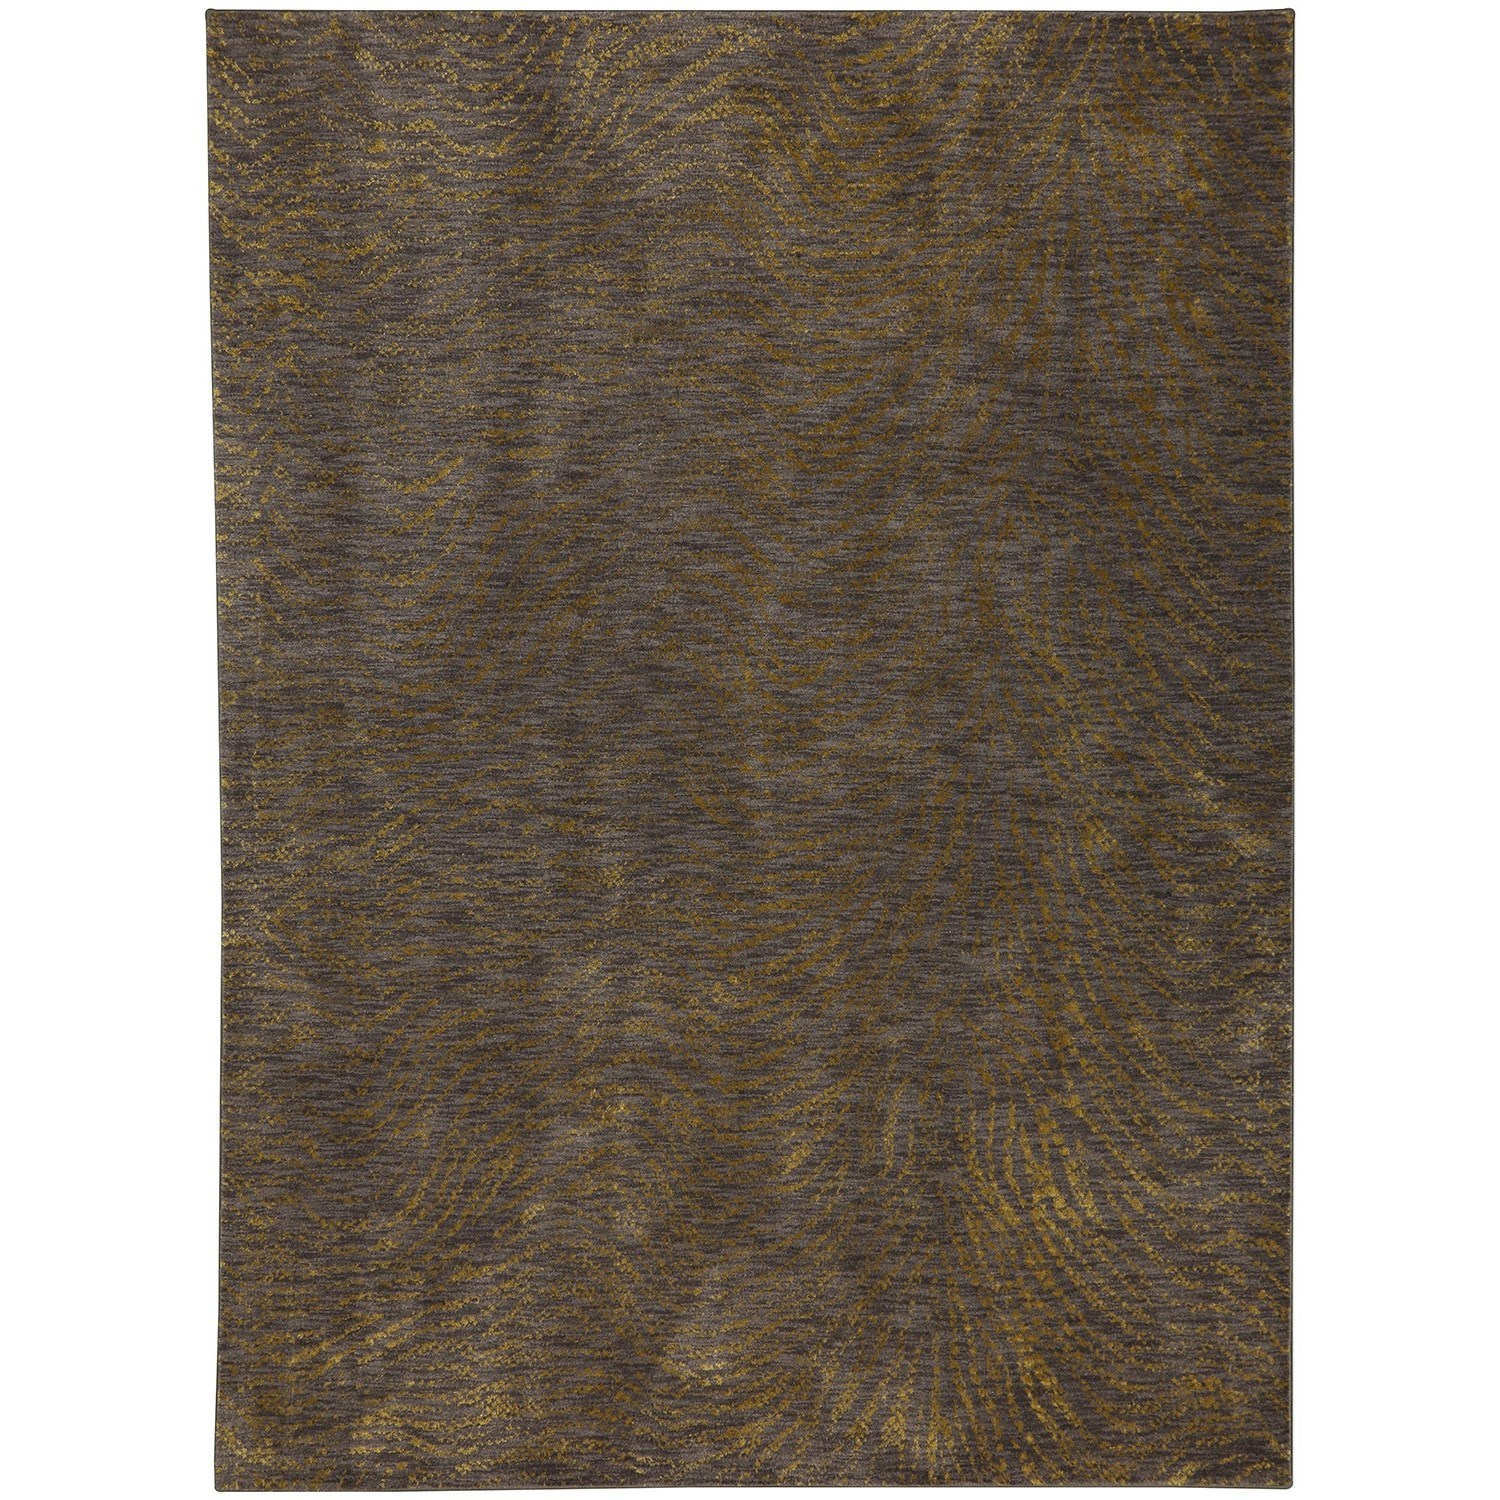 8'x11' Rectangle Animal Print Area Rug